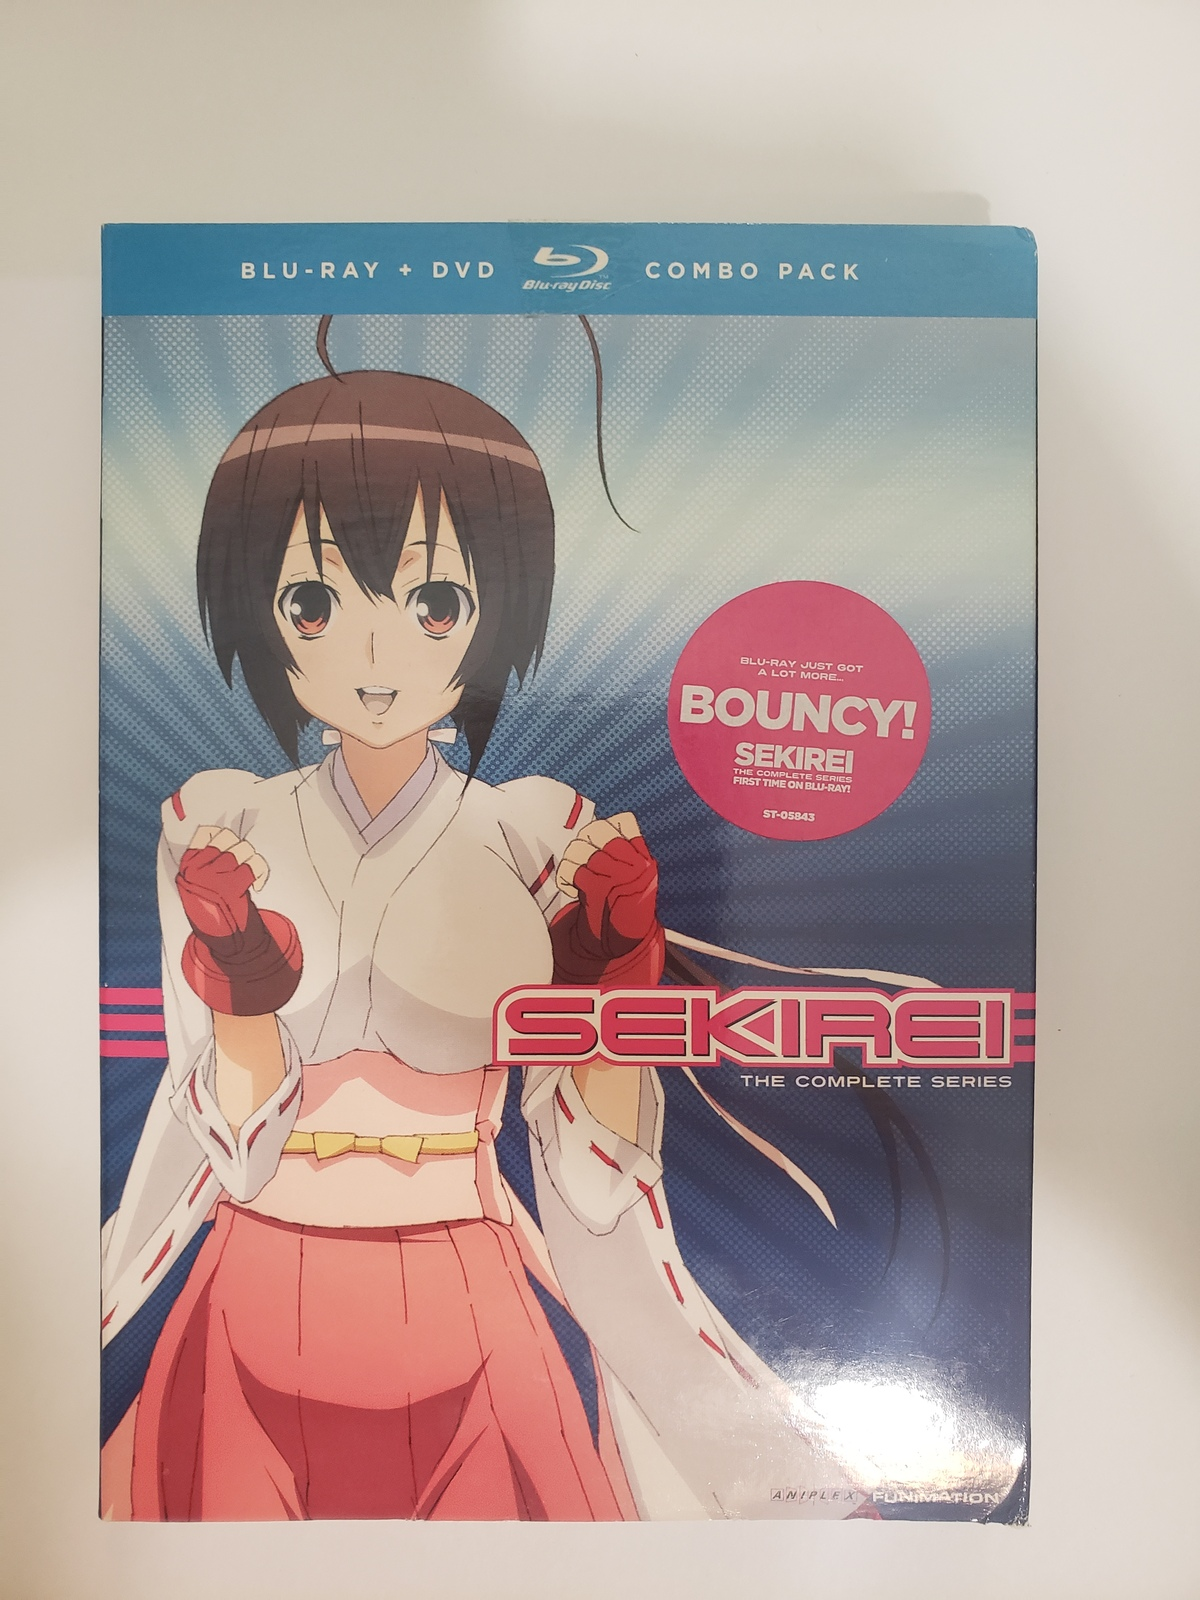 Primary image for Sekirei: Complete Series (Blu-ray/DVD Combo)